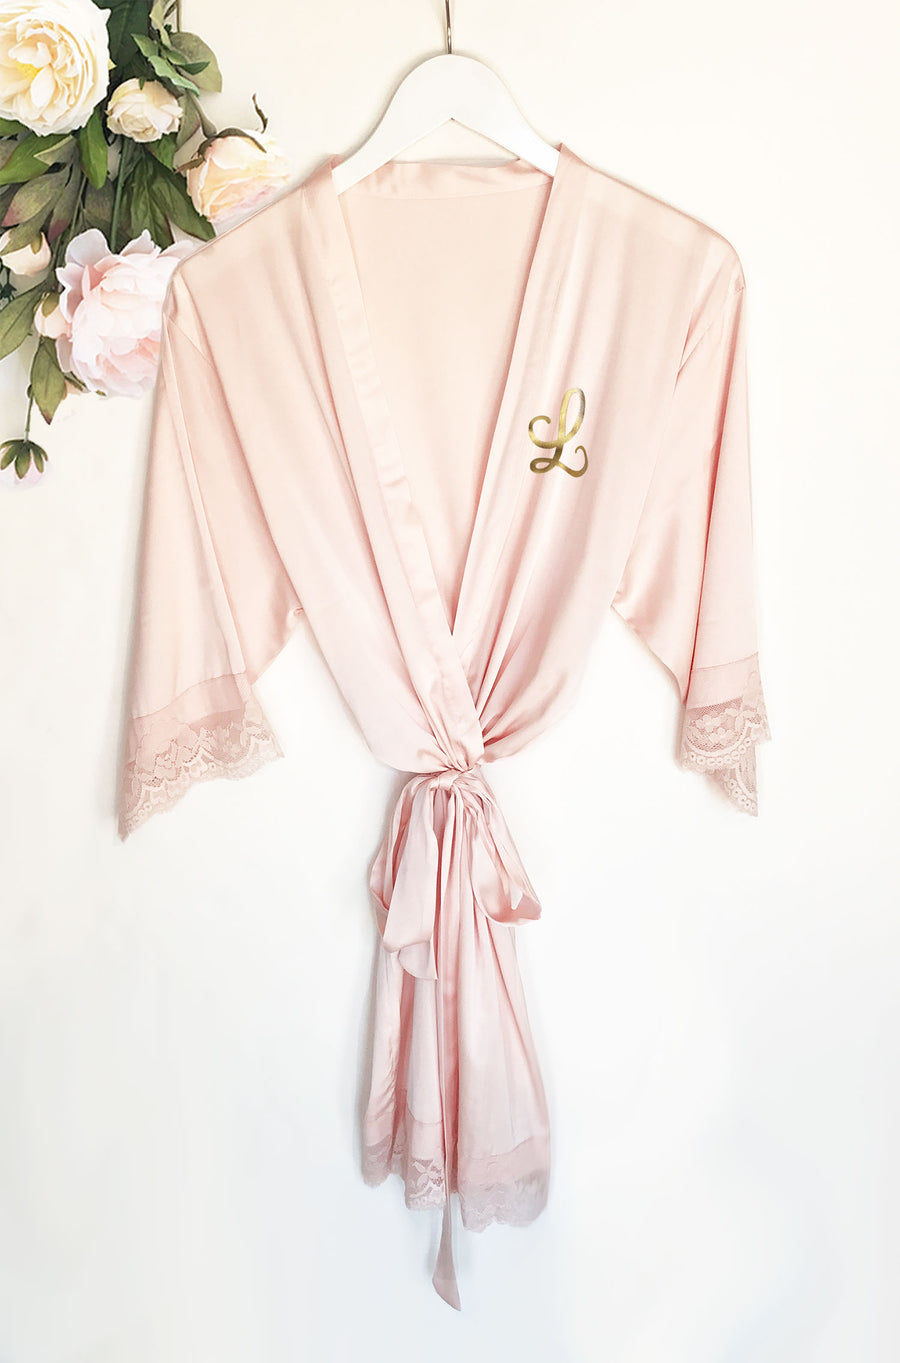 Monogram Satin Lace Robe Bridal Party Gift Blush Main